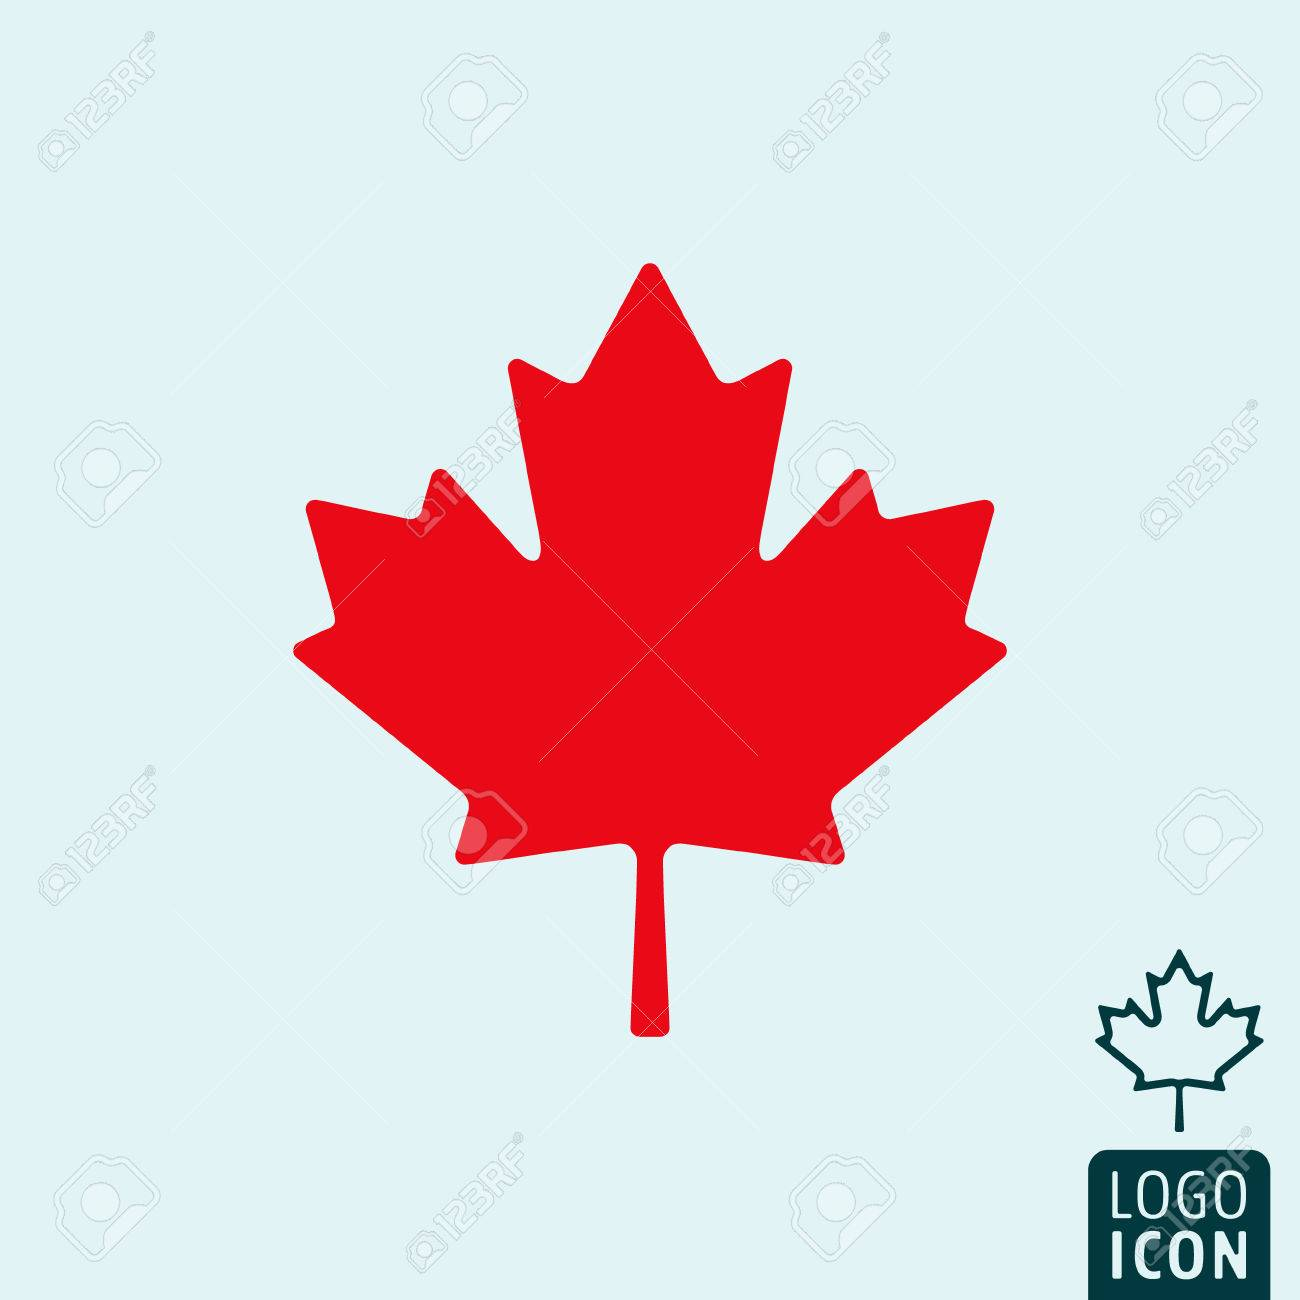 Canada Icon Canada Logo Canada Symbol Maple Leaf Icon Isolated